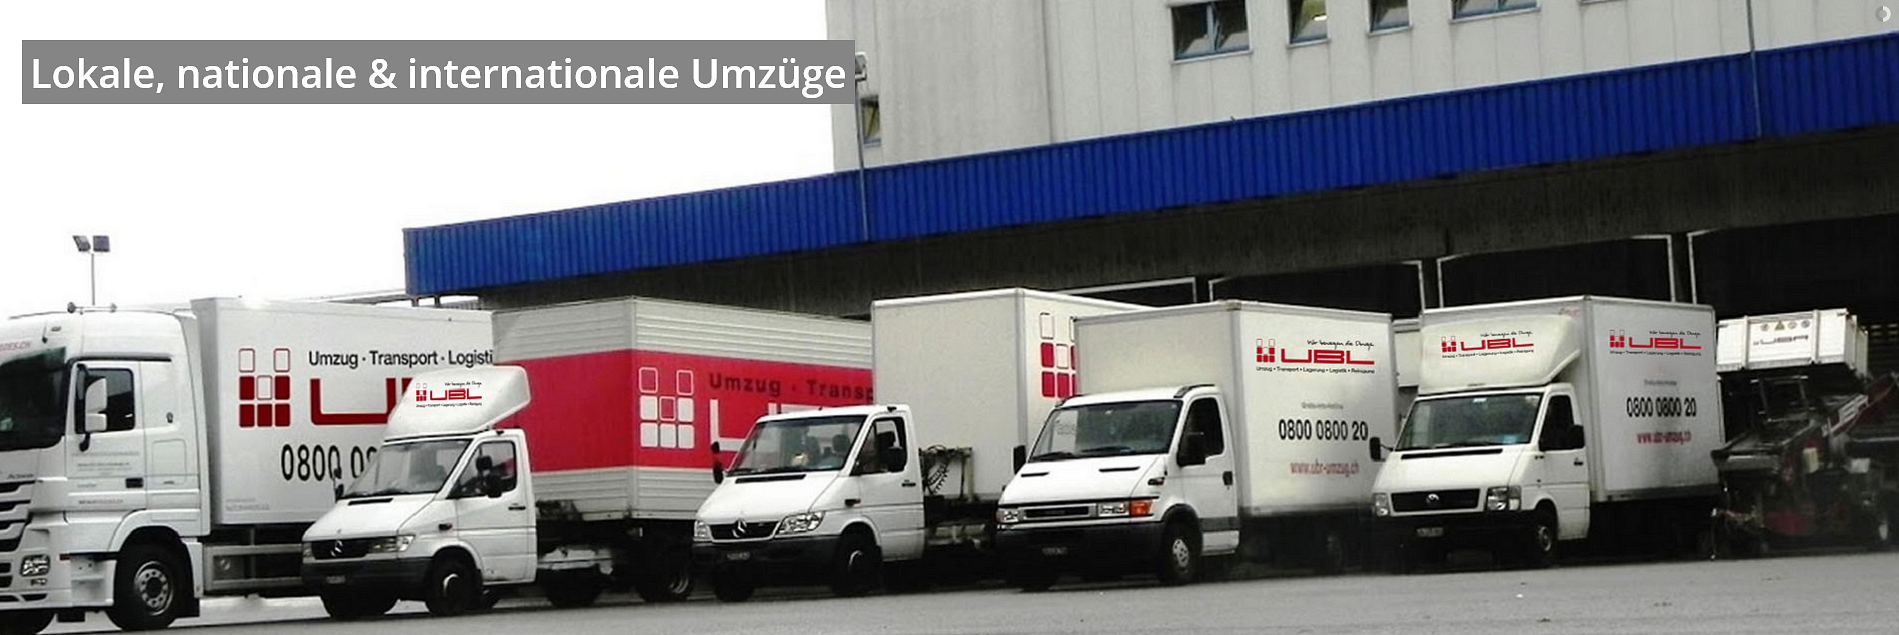 UBL Umzug Logistik Management GmbH